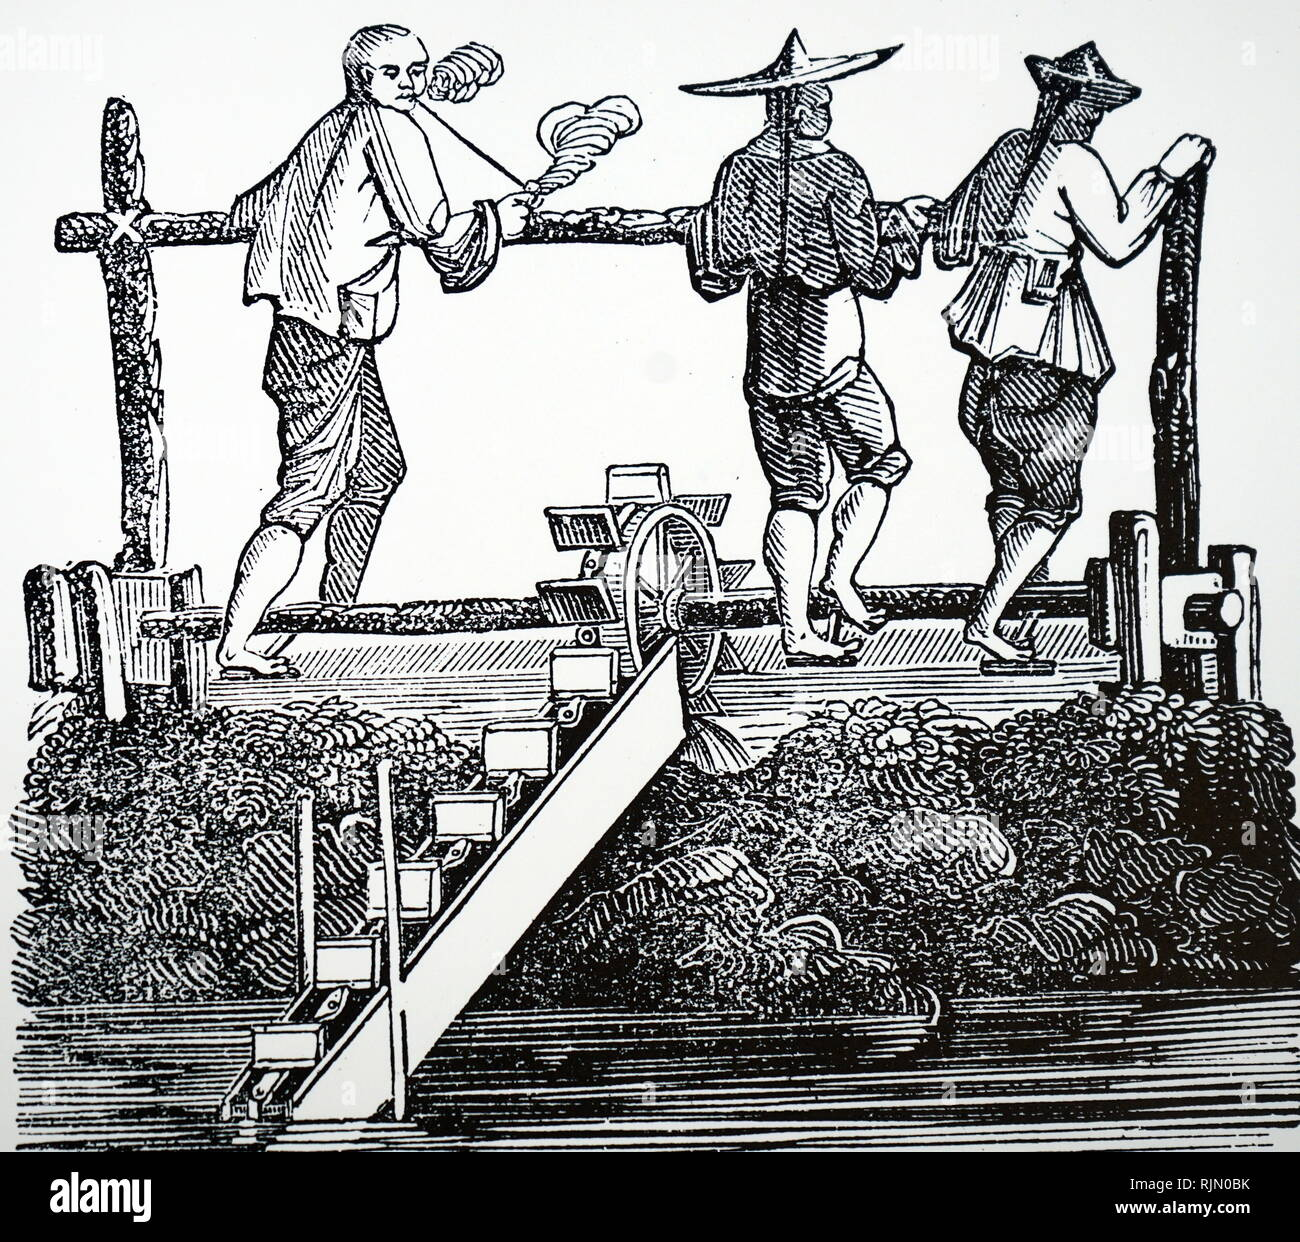 Mine drainage illustration: Man in centre left of picture is boring lengths of wood with borers and augers to form pipes. Man on centre right is working the piston rod of a suction pump to rais e water from a mine (water is running out of pipe, G).In the left foreground are lengths of pipe to be joined, and various internal pump parts. From Agricola 'De re metallica', Basle, 1556 - Stock Image